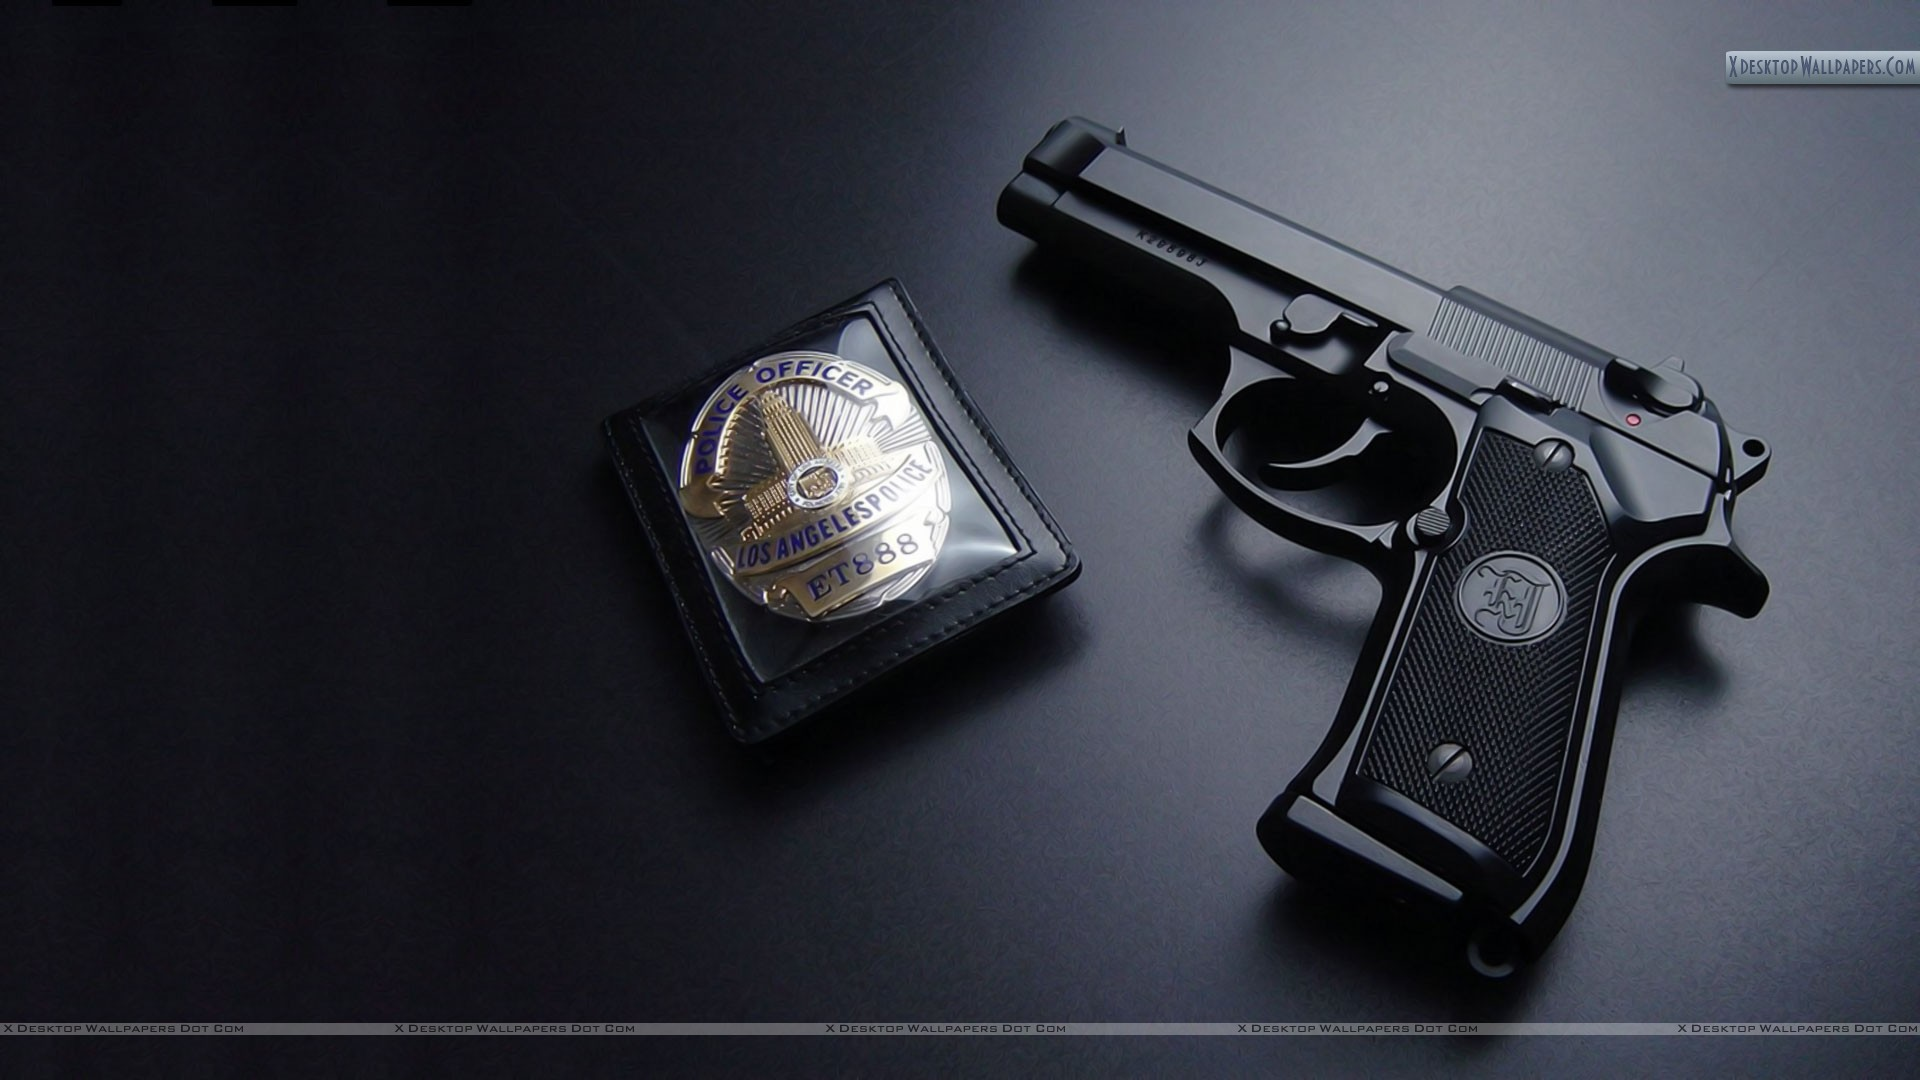 Weapons Wallpapers Photos Images in HD 1920x1080